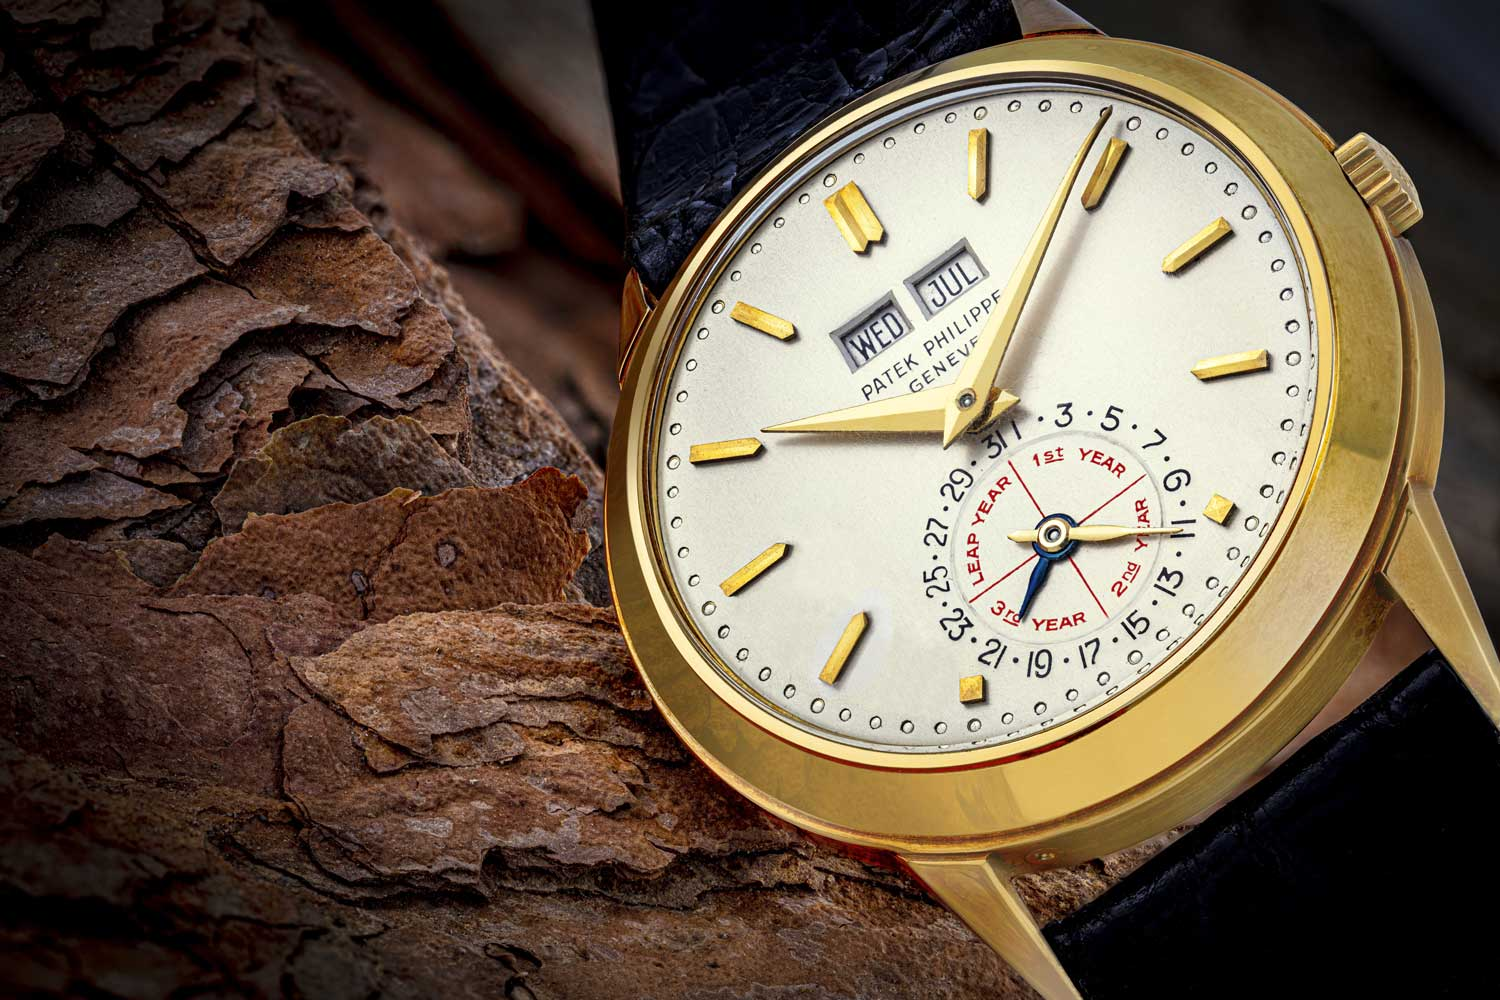 """A unique and historically highly important 18k gold automatic perpetual calendar wristwatch ref. 3448 """"Alan Banbery"""", specially modified in 1975 as a unique piece for presentation to Alan Banbery, manufactured in 1970."""